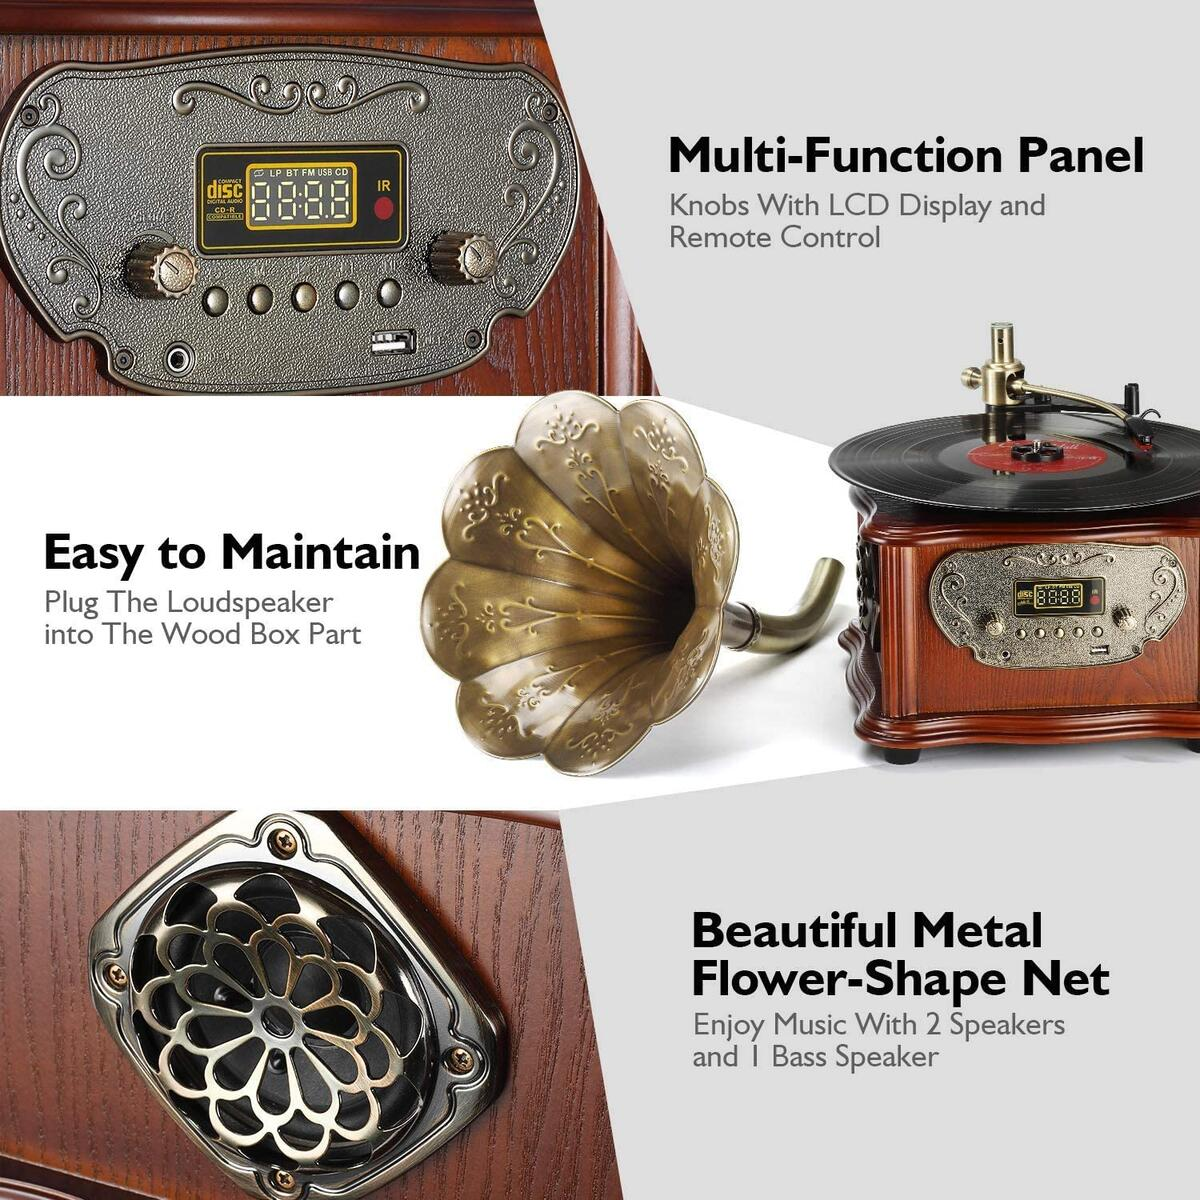 LuguLake Record Player Retro Turntable, All in One Vintage Phonograph Nostalgic Gramophone for LP with Copper Horn, Built-in Speaker and Subwoofer 3.5mm Aux-in/USB/FM Radio